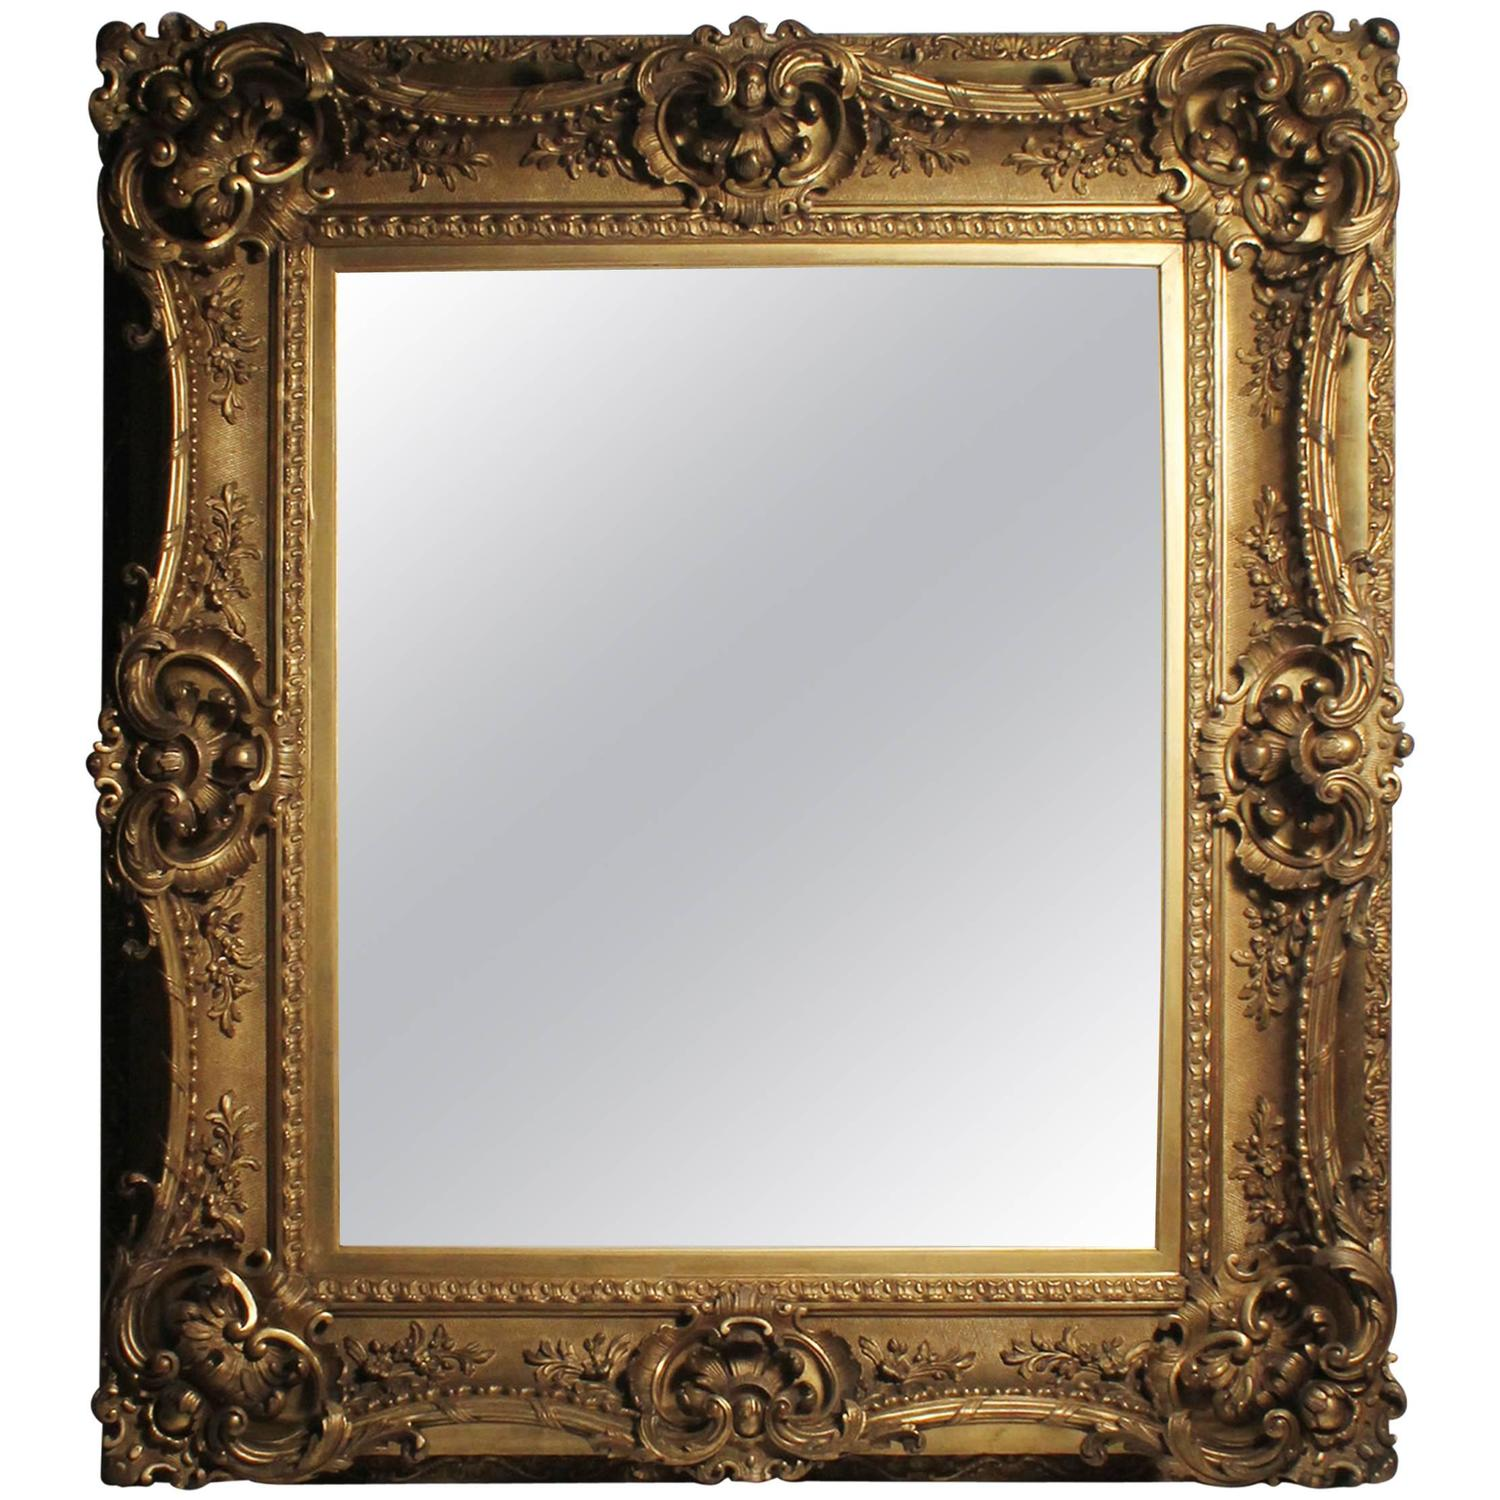 antique italian gilt 19th century picture frame or mirror baroque rococo style for sale at 1stdibs. Black Bedroom Furniture Sets. Home Design Ideas